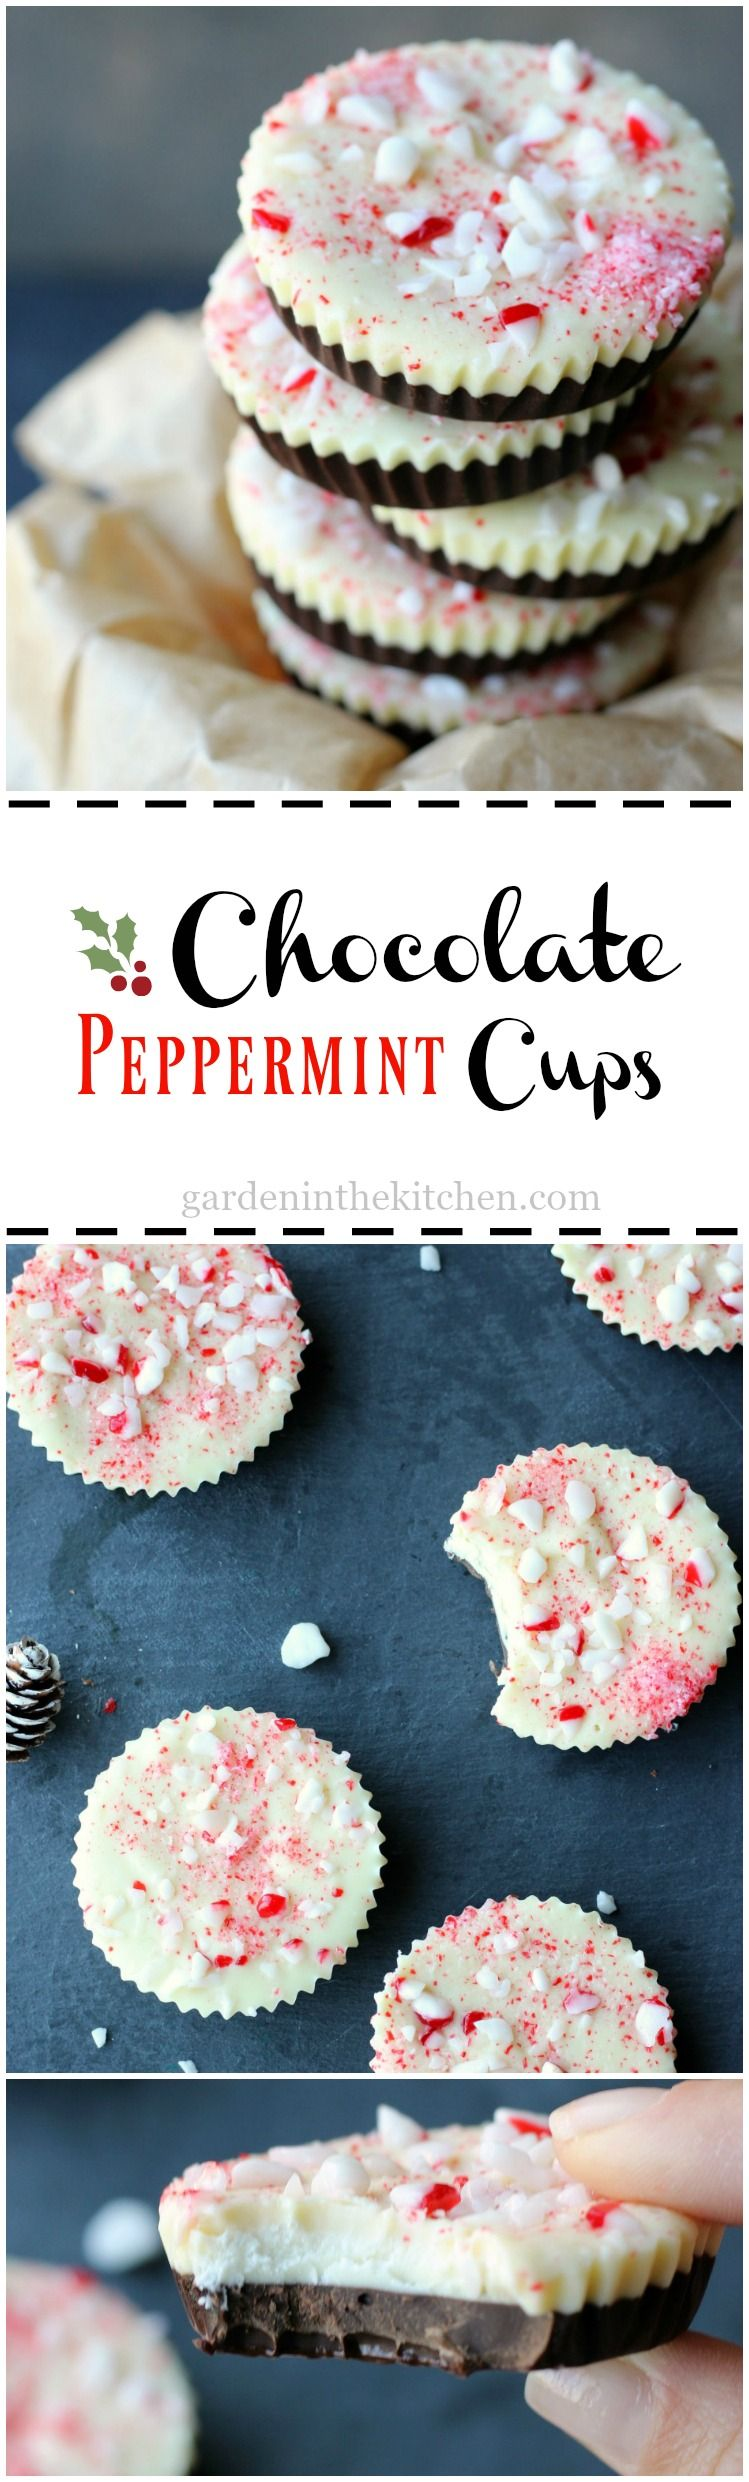 BEST Chocolate Peppermint Cups